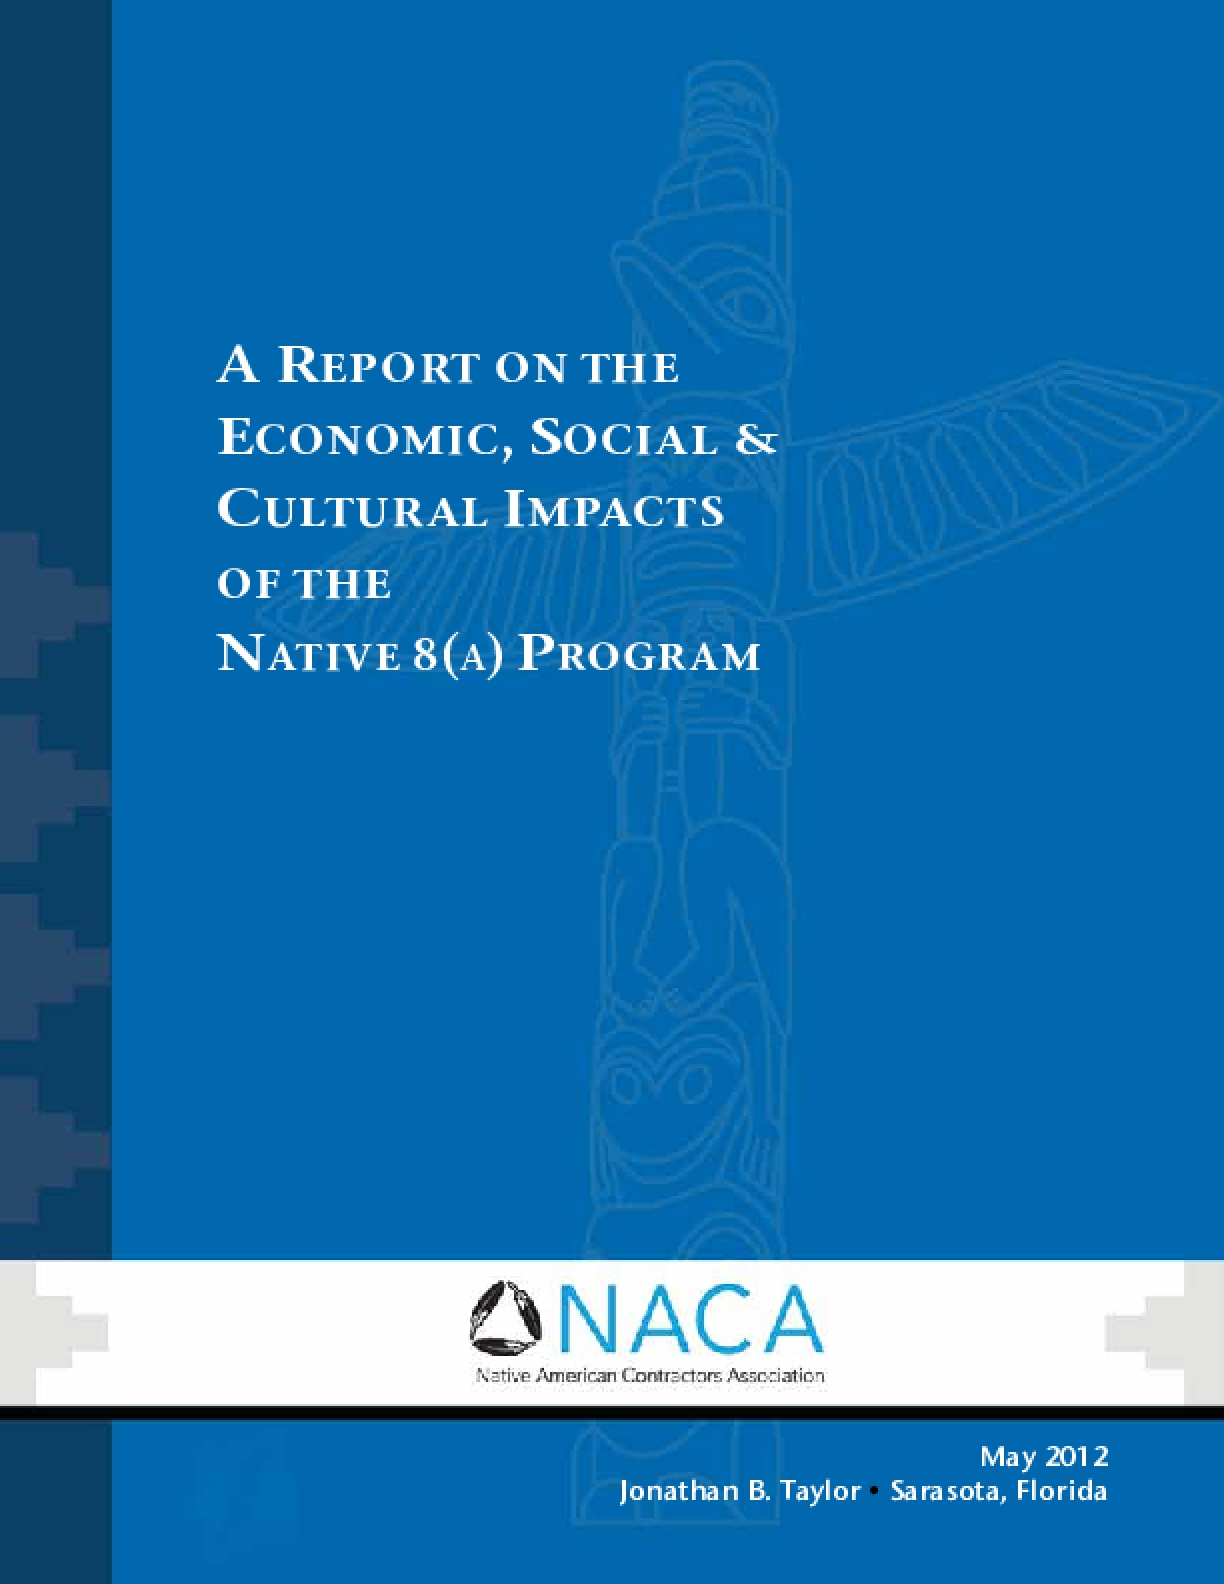 A Report on the Economic, Social & Cultural Impact of the Native 8(A) program